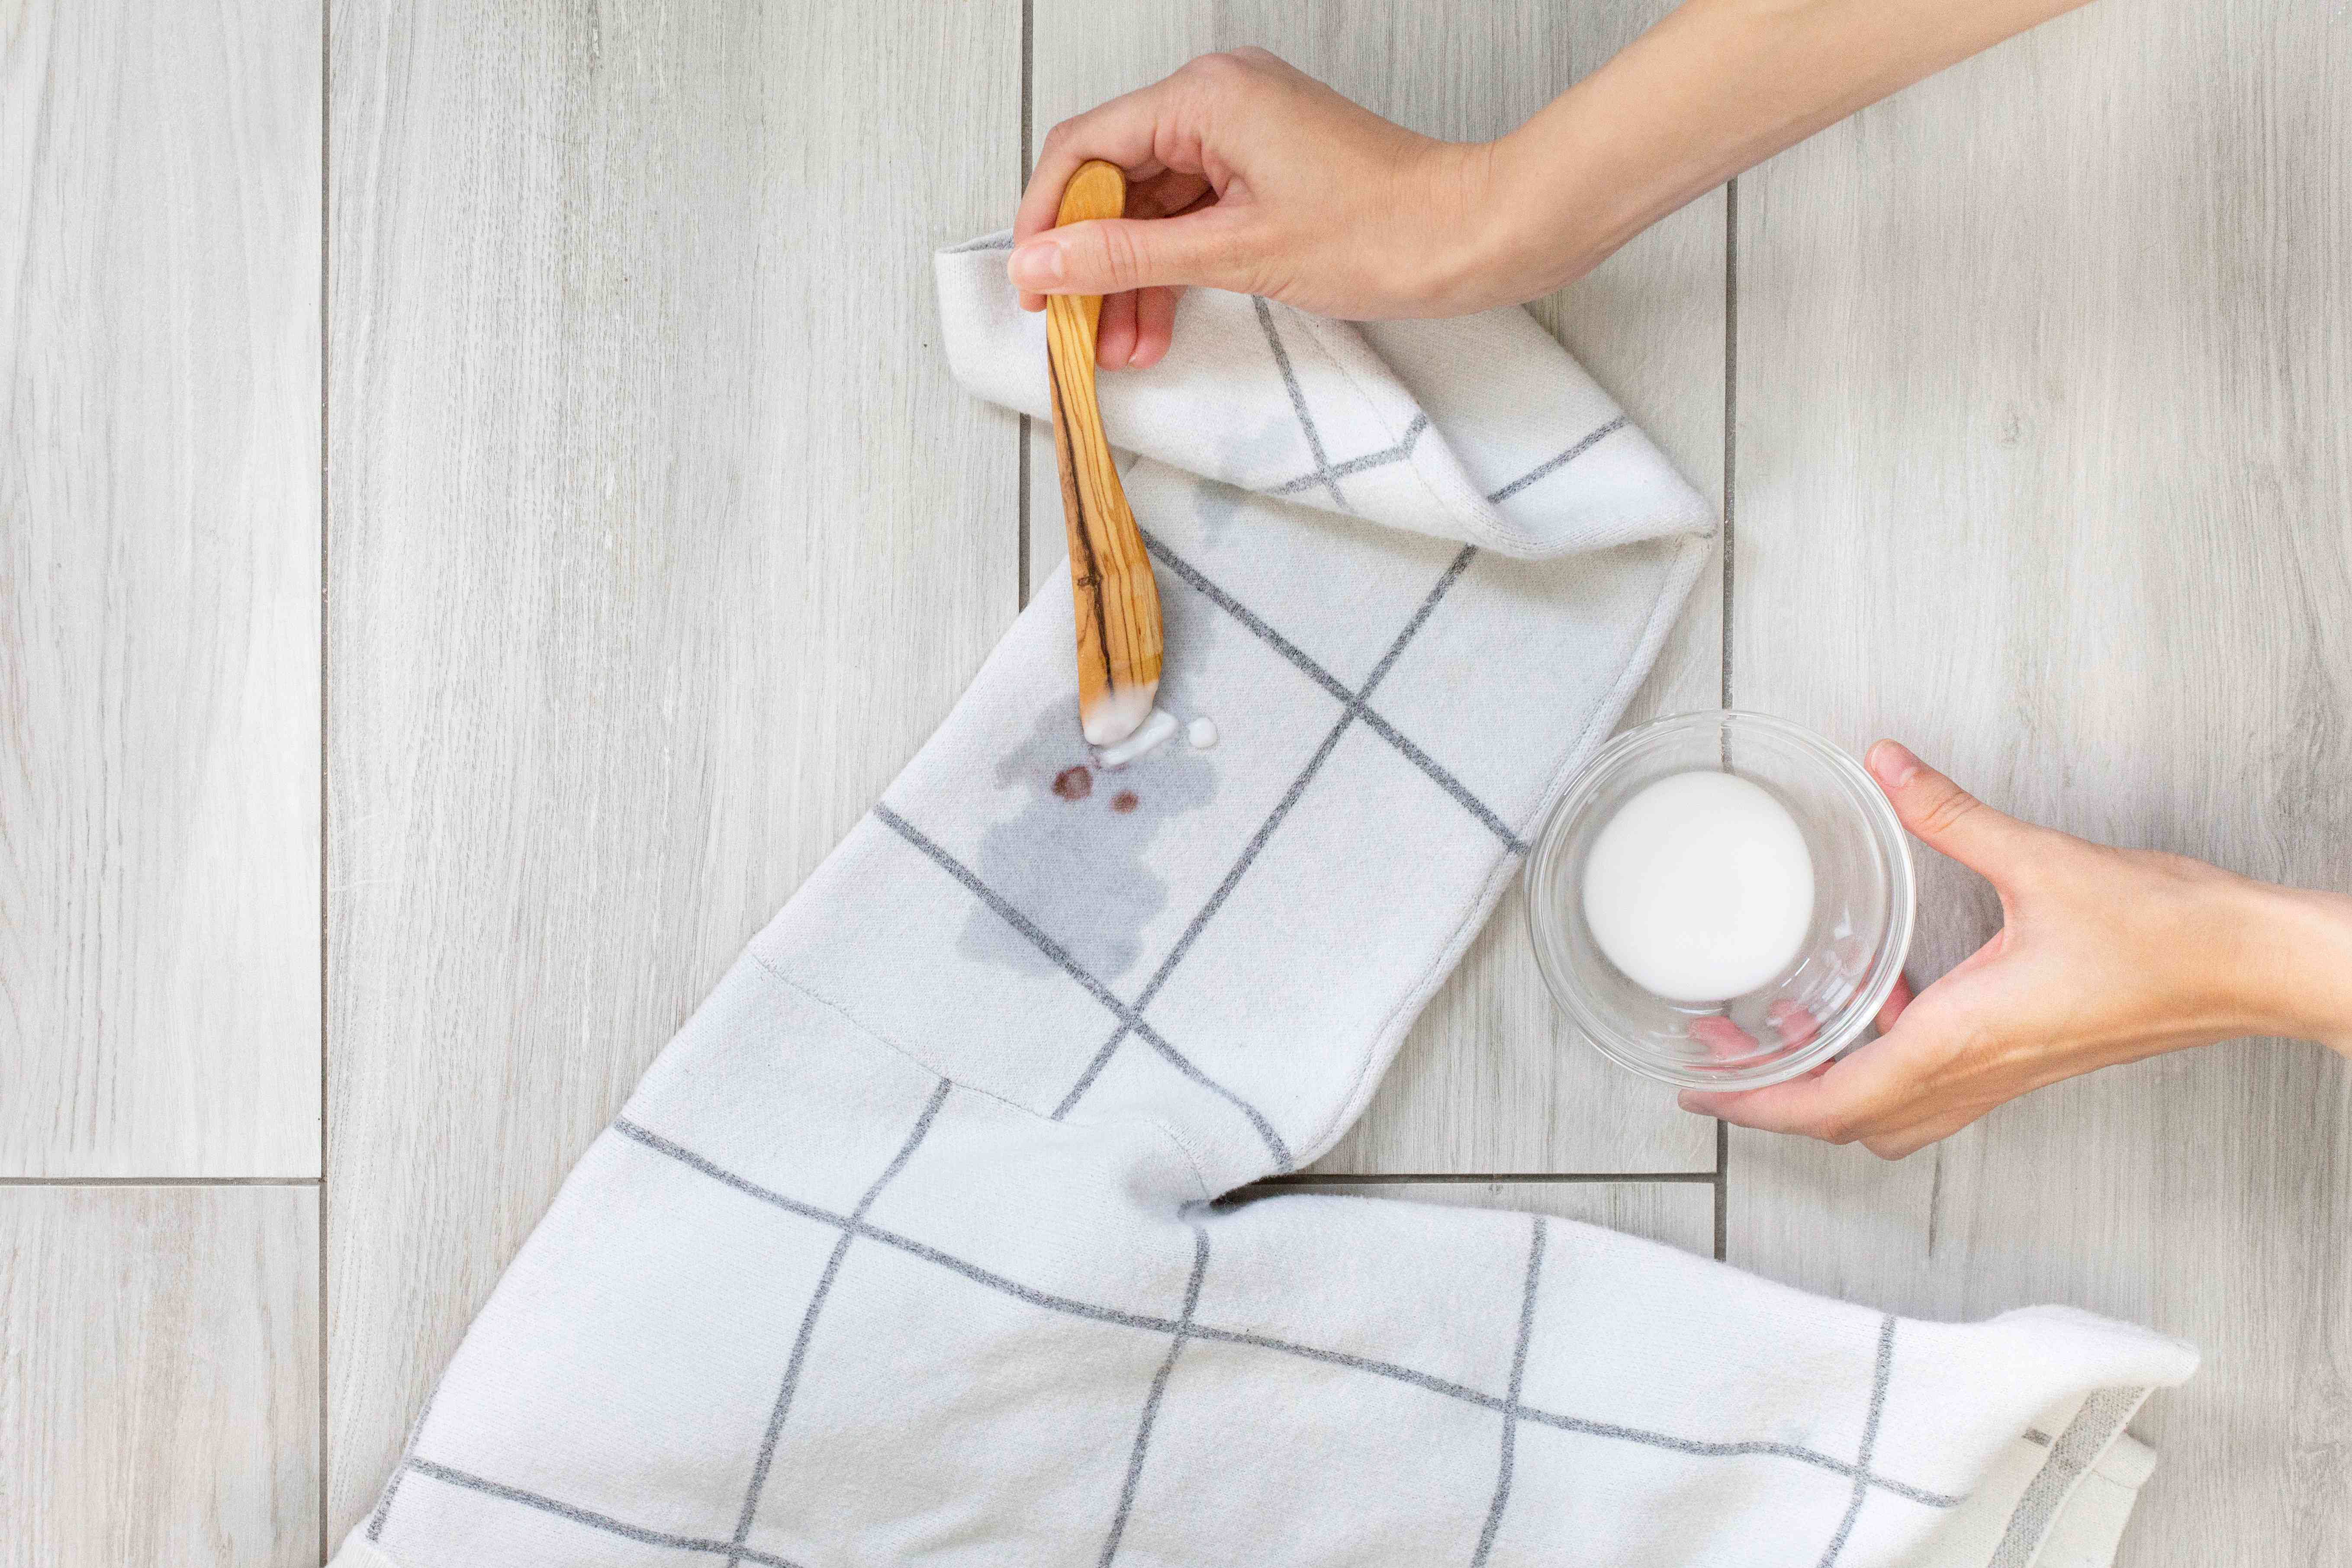 using baking soda to remove blood stains